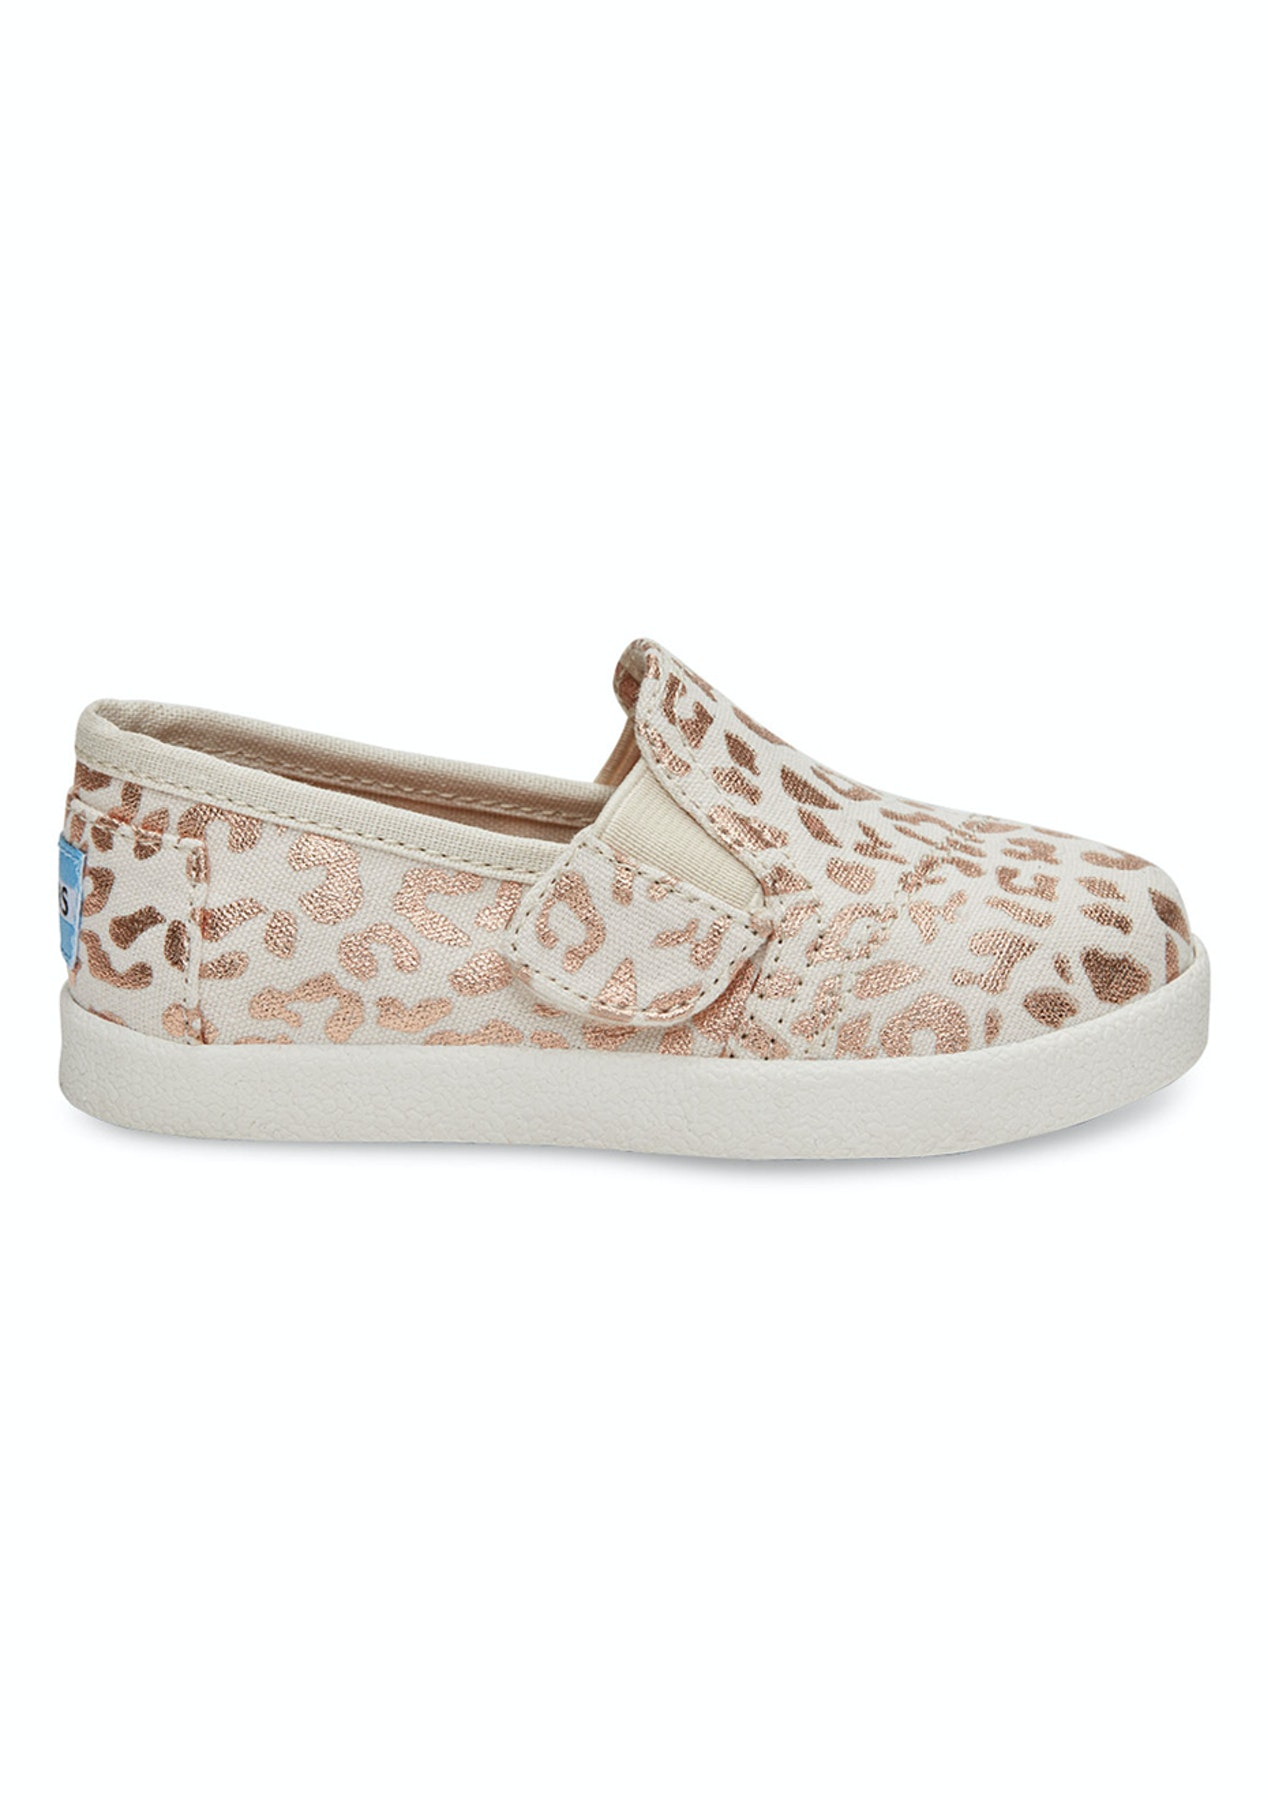 44d7247c019 Toms - Tiny Avalon Slipon - Natural Cheetah Foil - Kids Fashion Outlet    More - Onceit